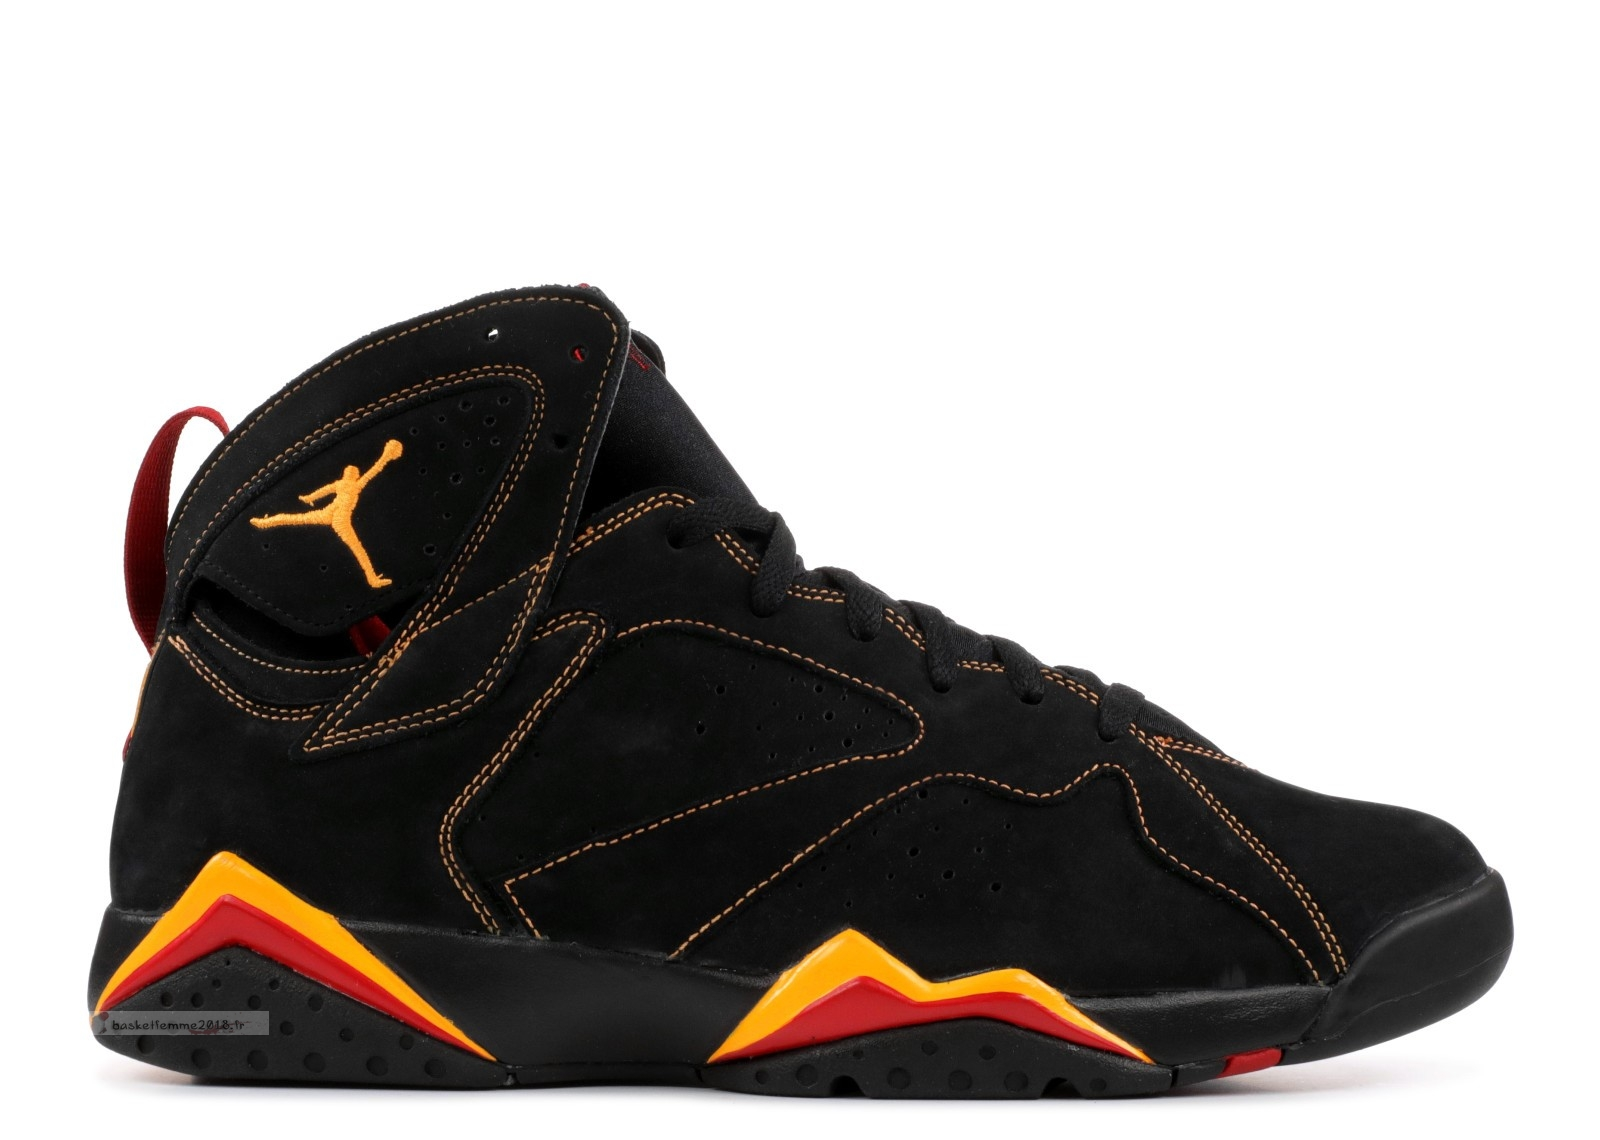 Air Jordan 7 Retro Noir Orange Rouge (304775-081) Chaussure de Basket